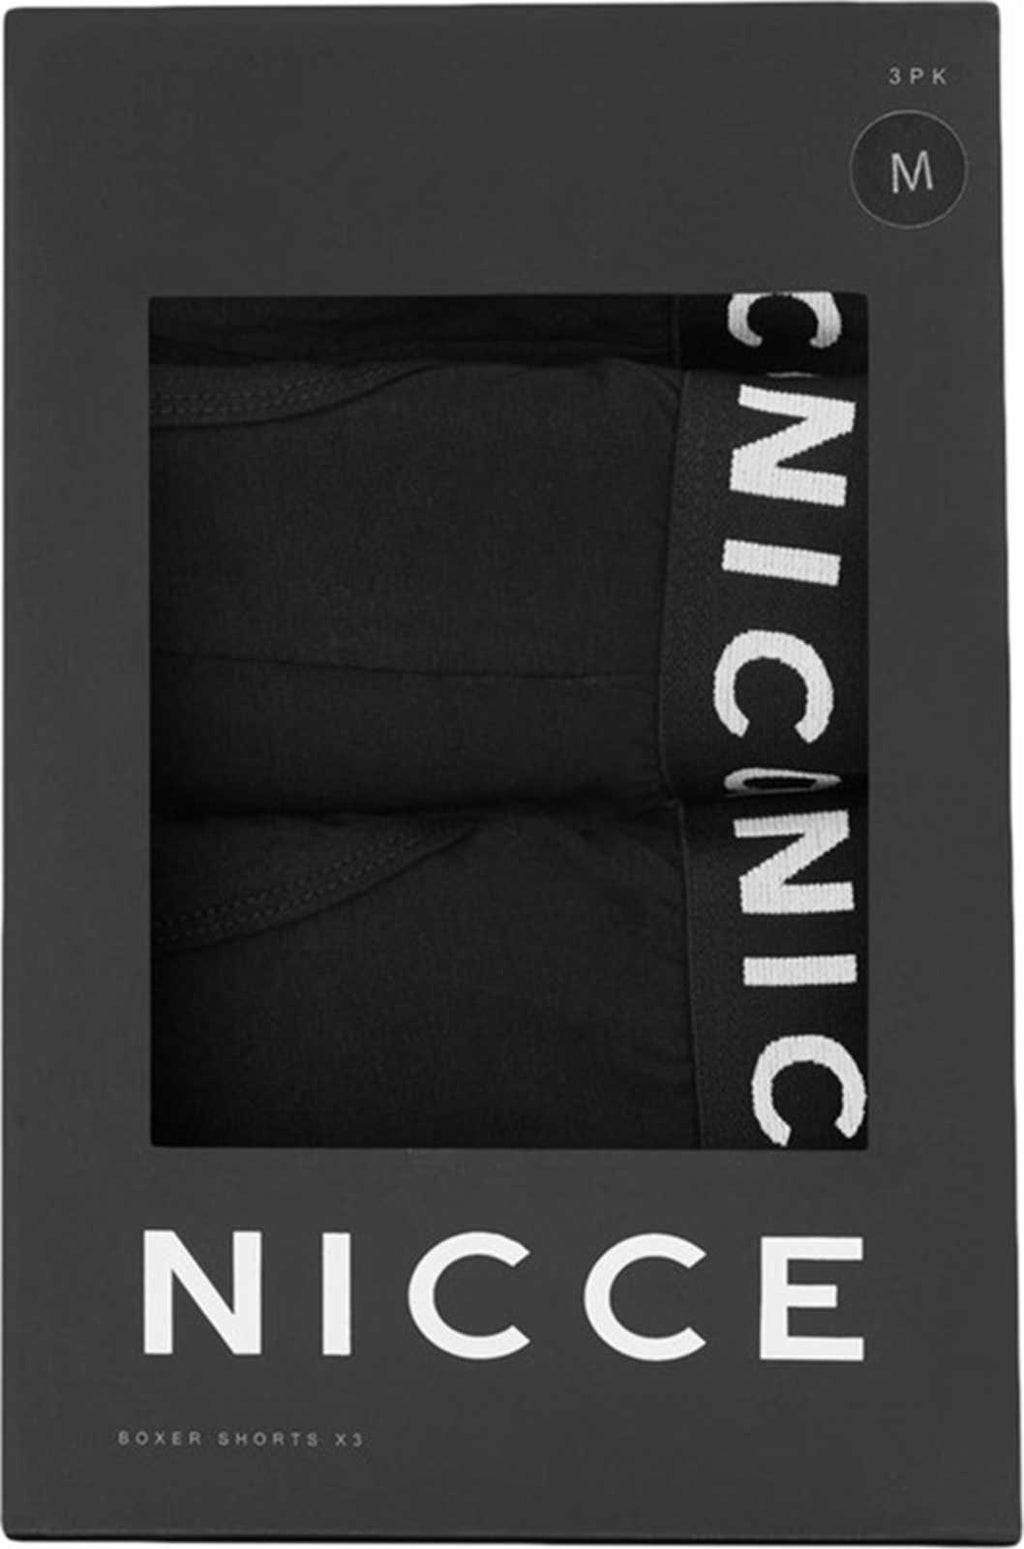 NICCE Cubar 3 Pack Trunk Boxer Shorts Black